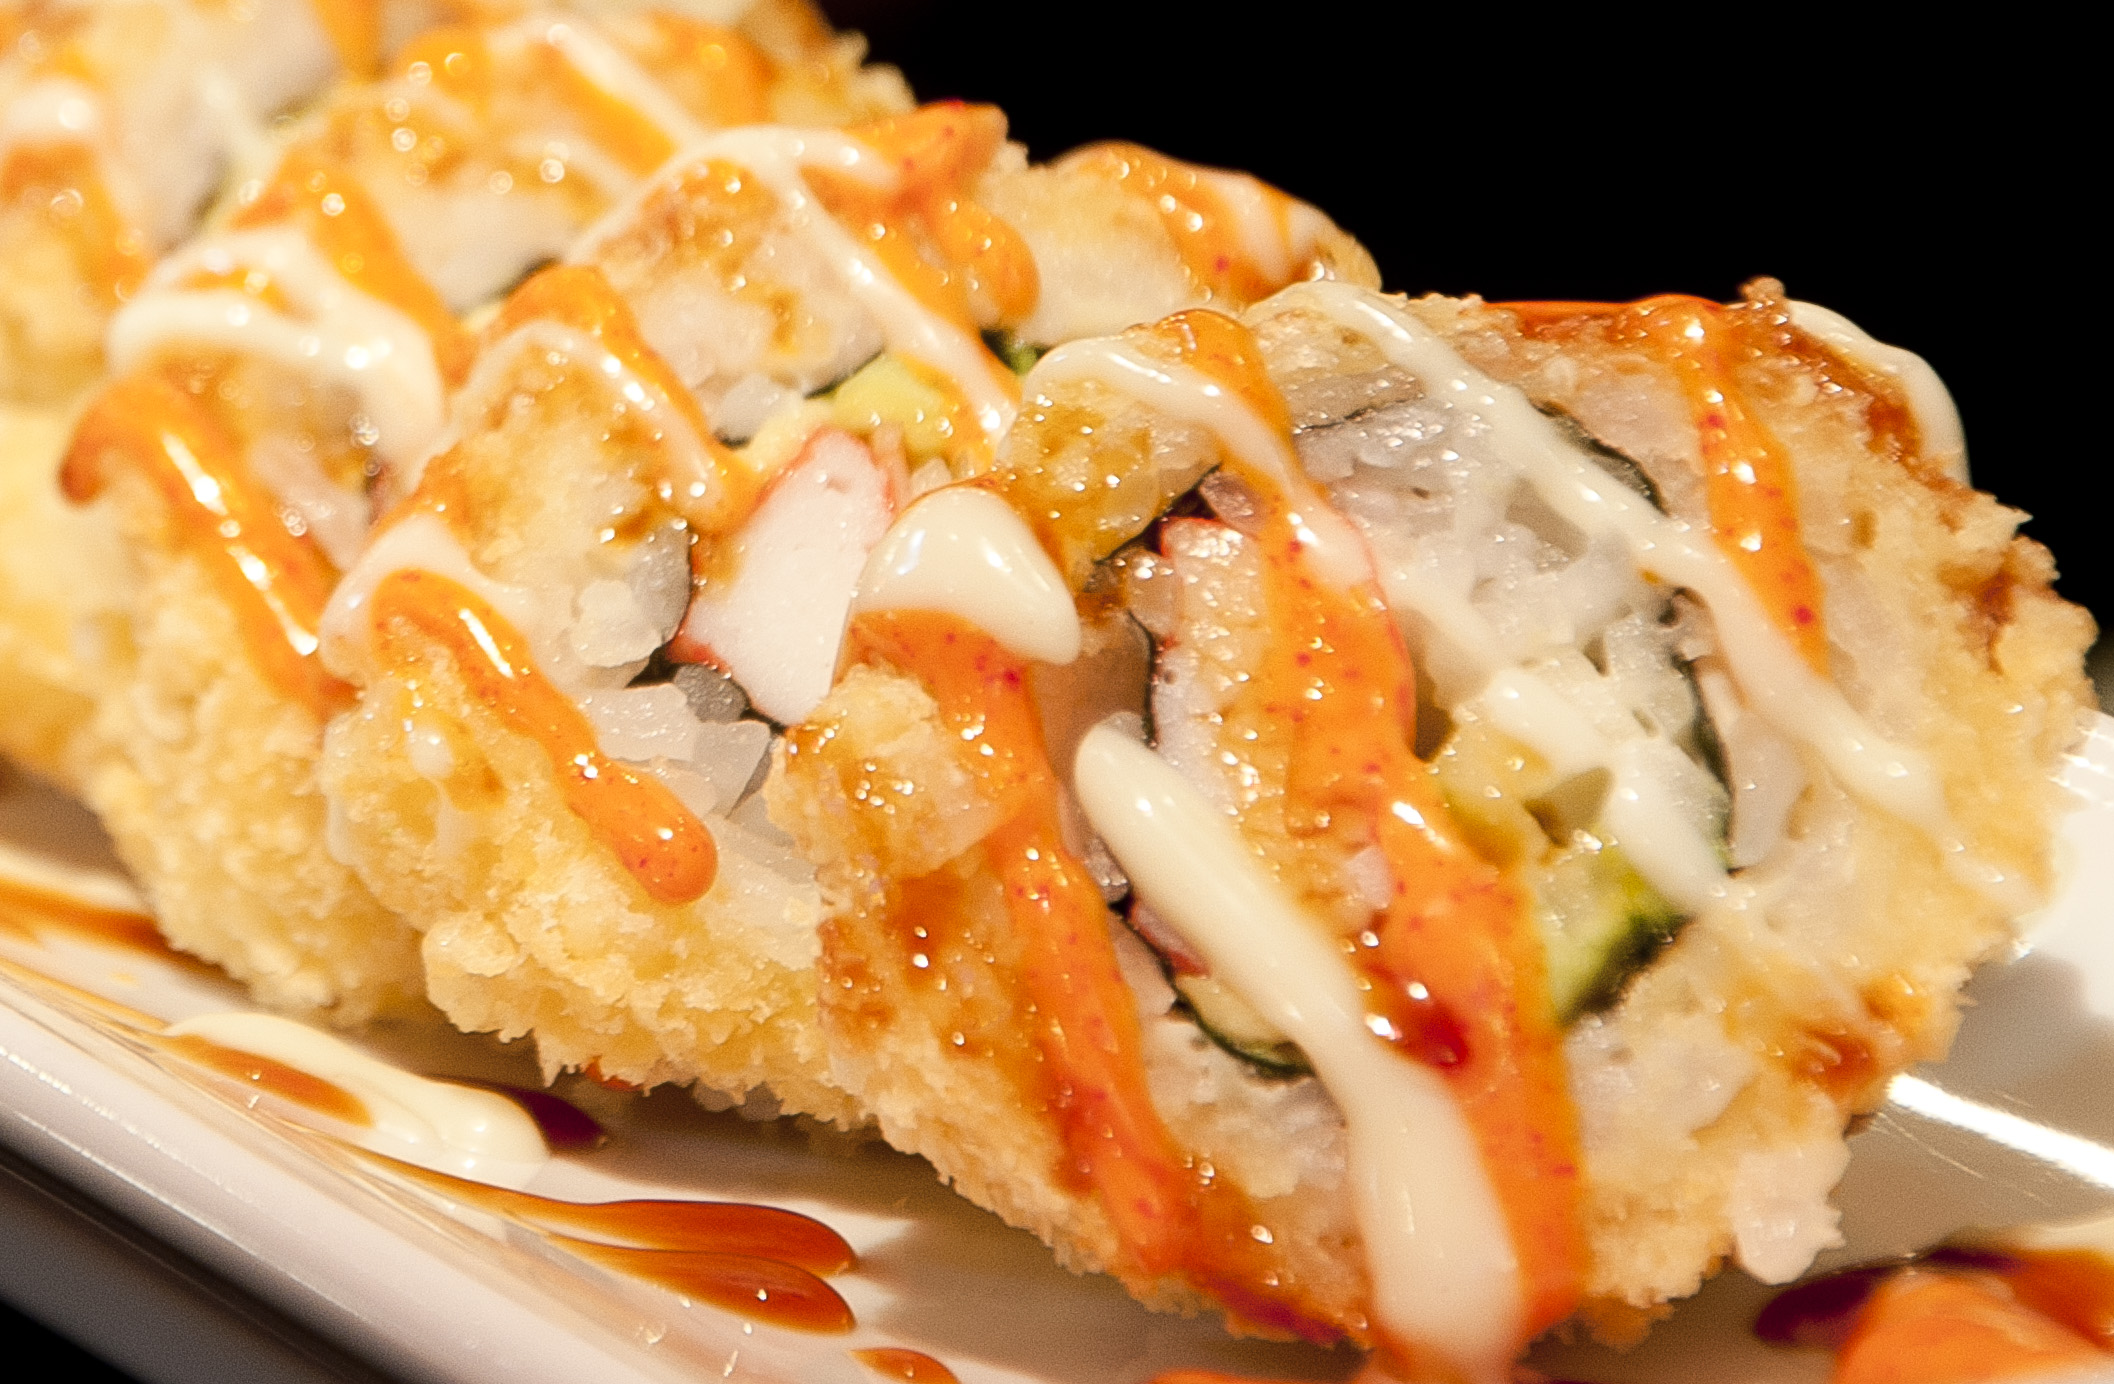 Spicy Crunchy California Roll